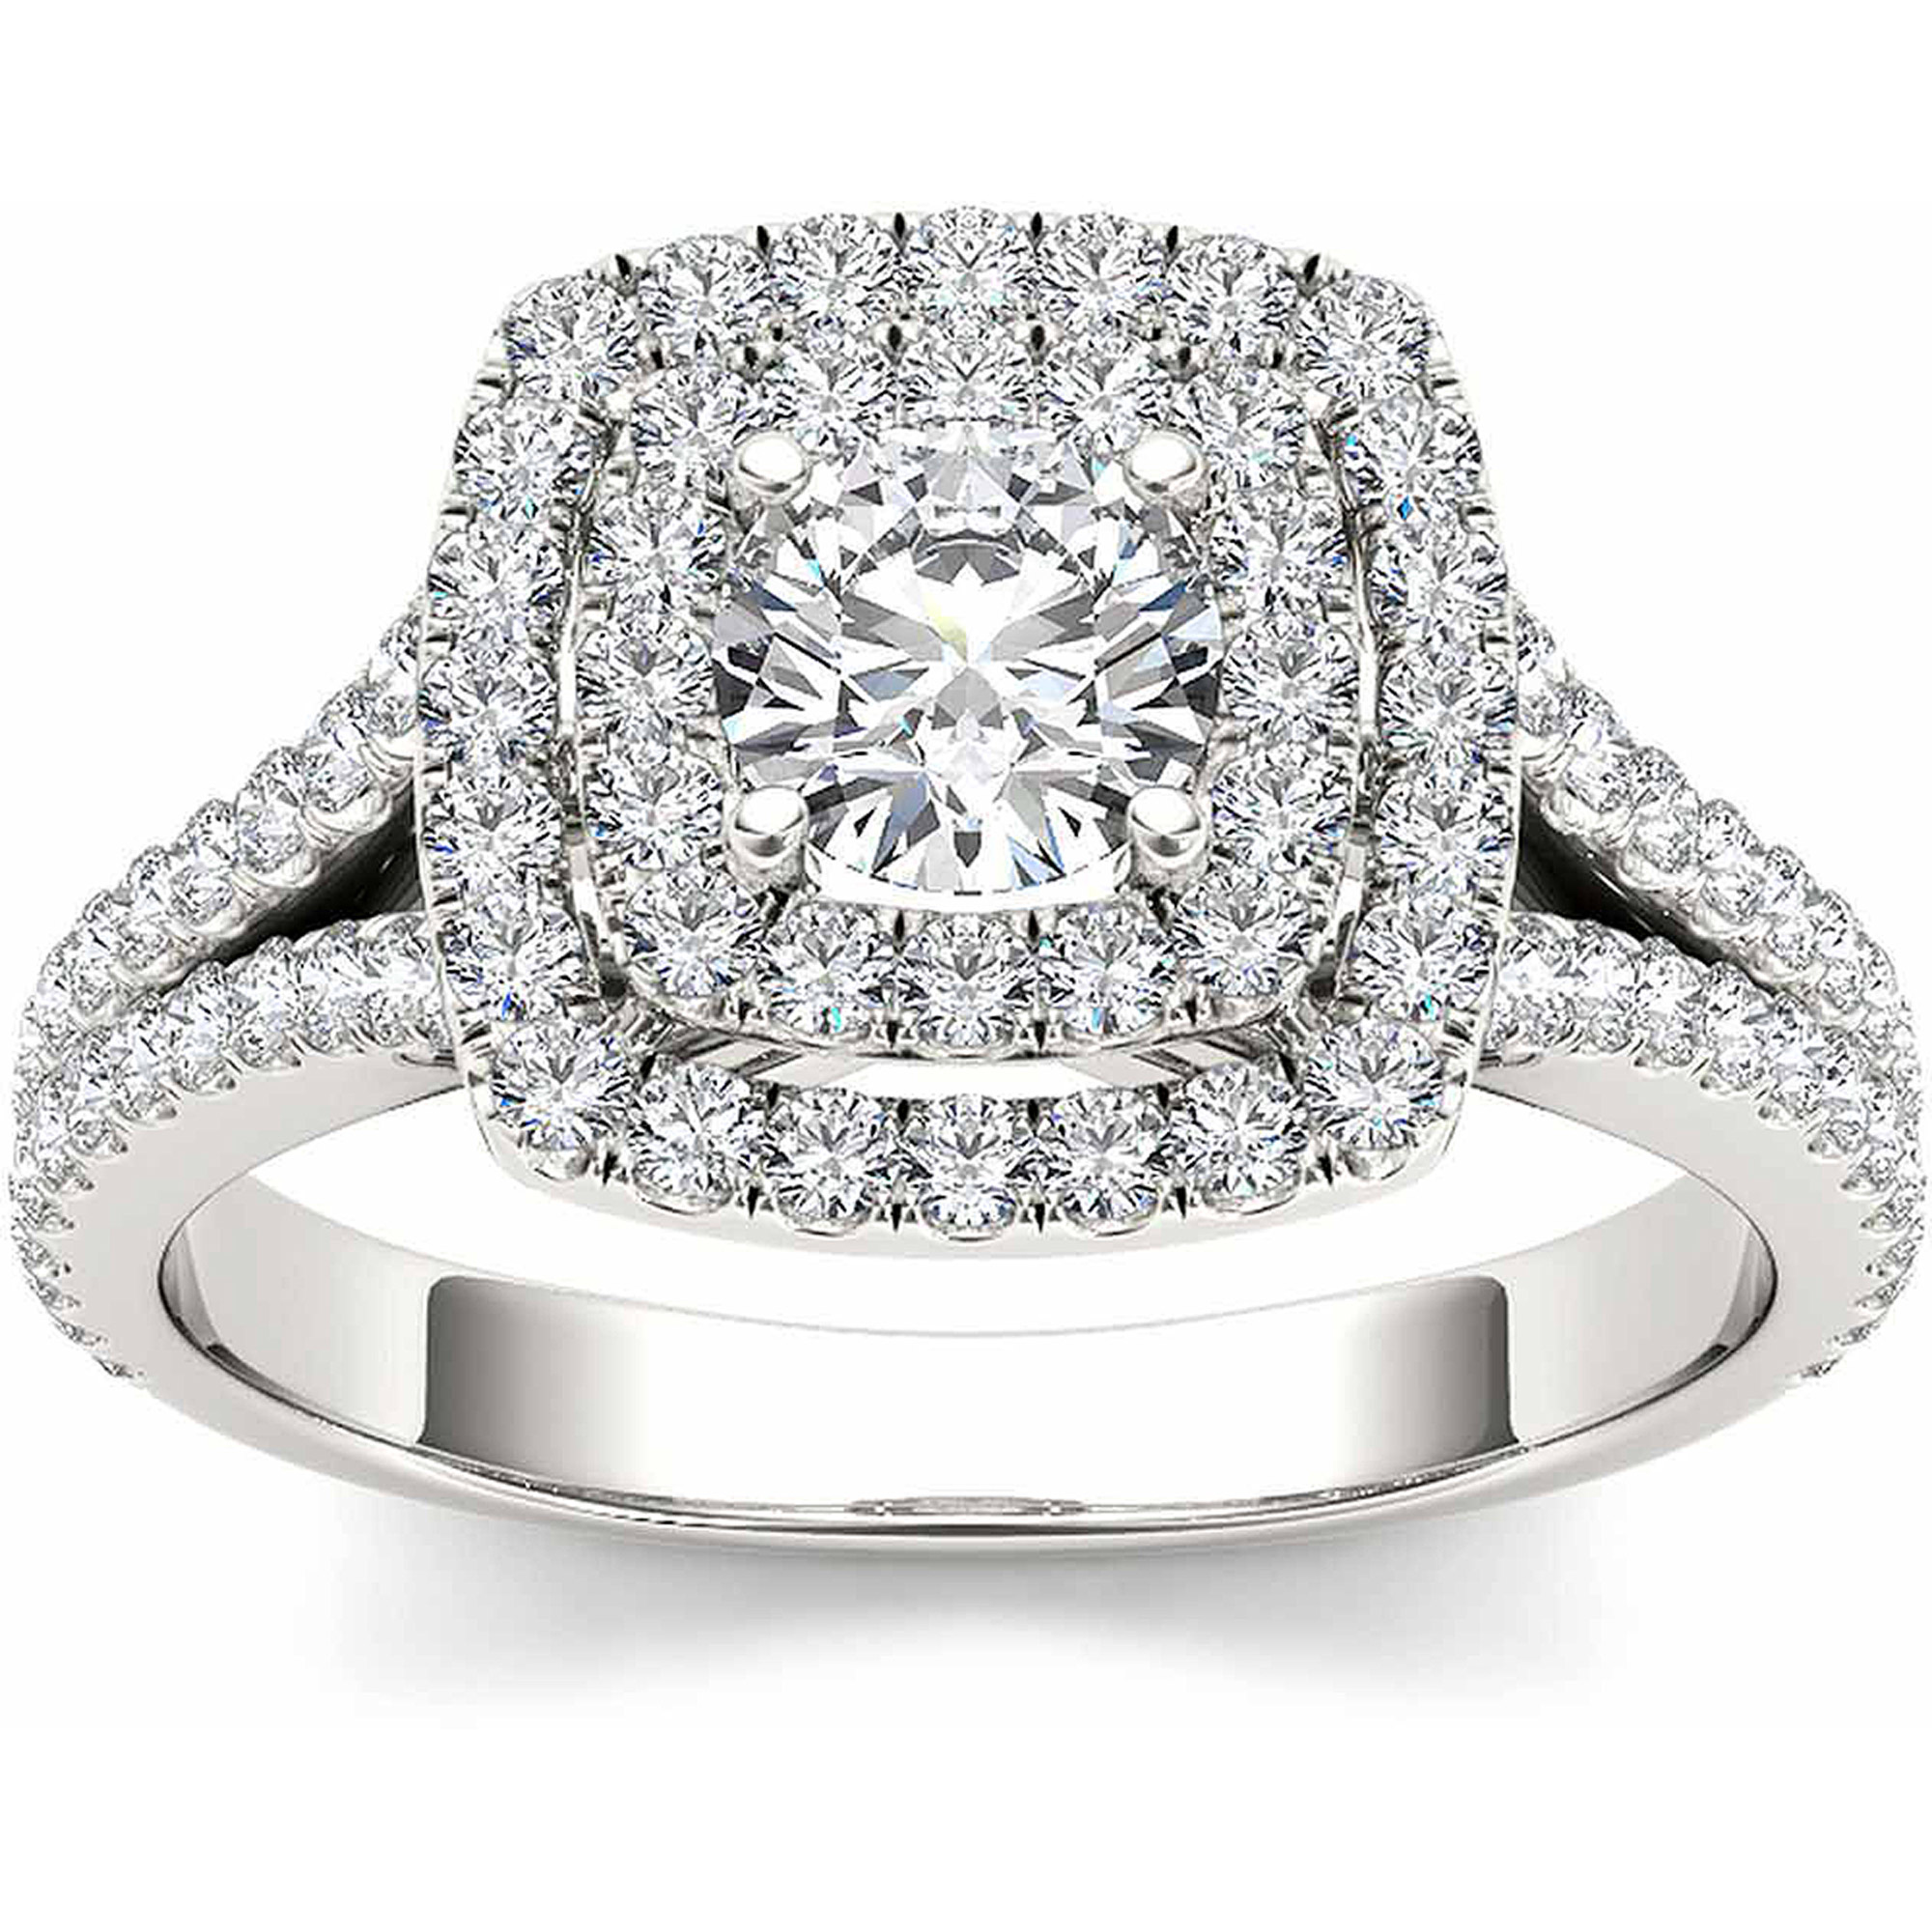 Imperial 1 Carat T.W. Diamond 10kt White Gold Double Halo Split Shank Engagement Ring